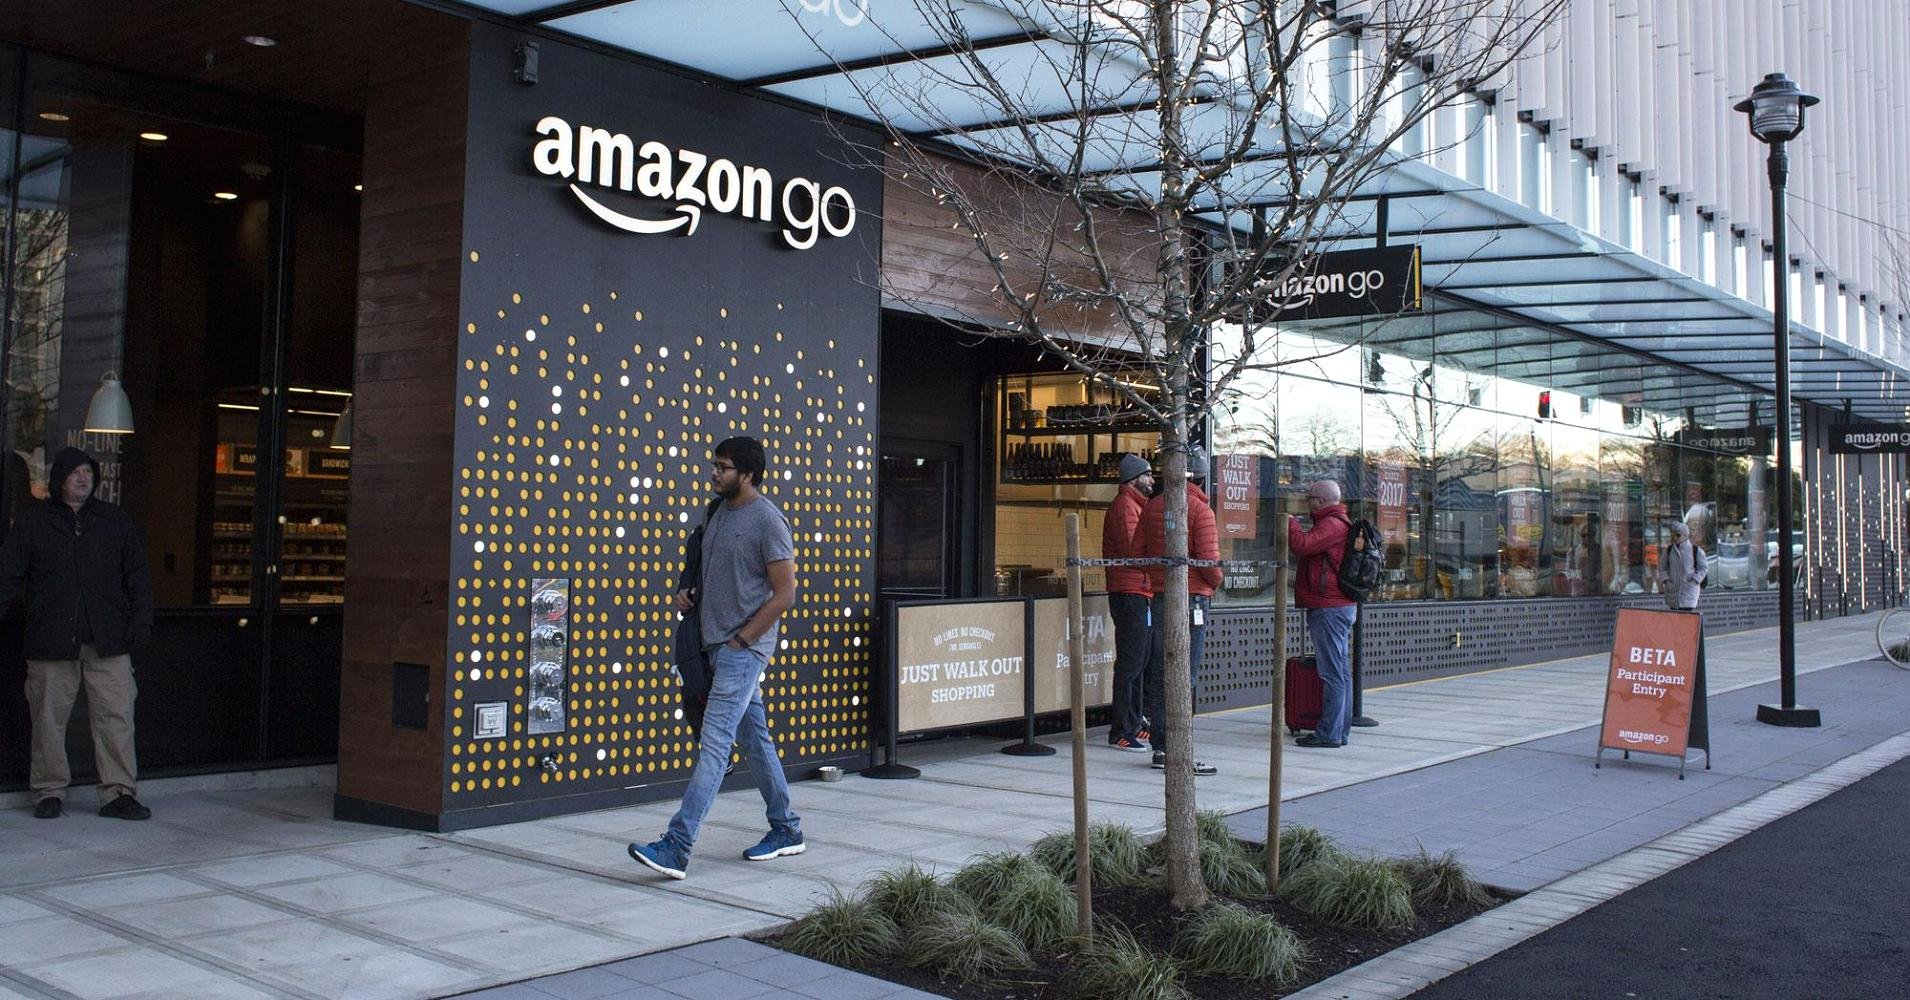 Amazon 39 s automated grocery store set to open monday swx for What grocery stores are open today